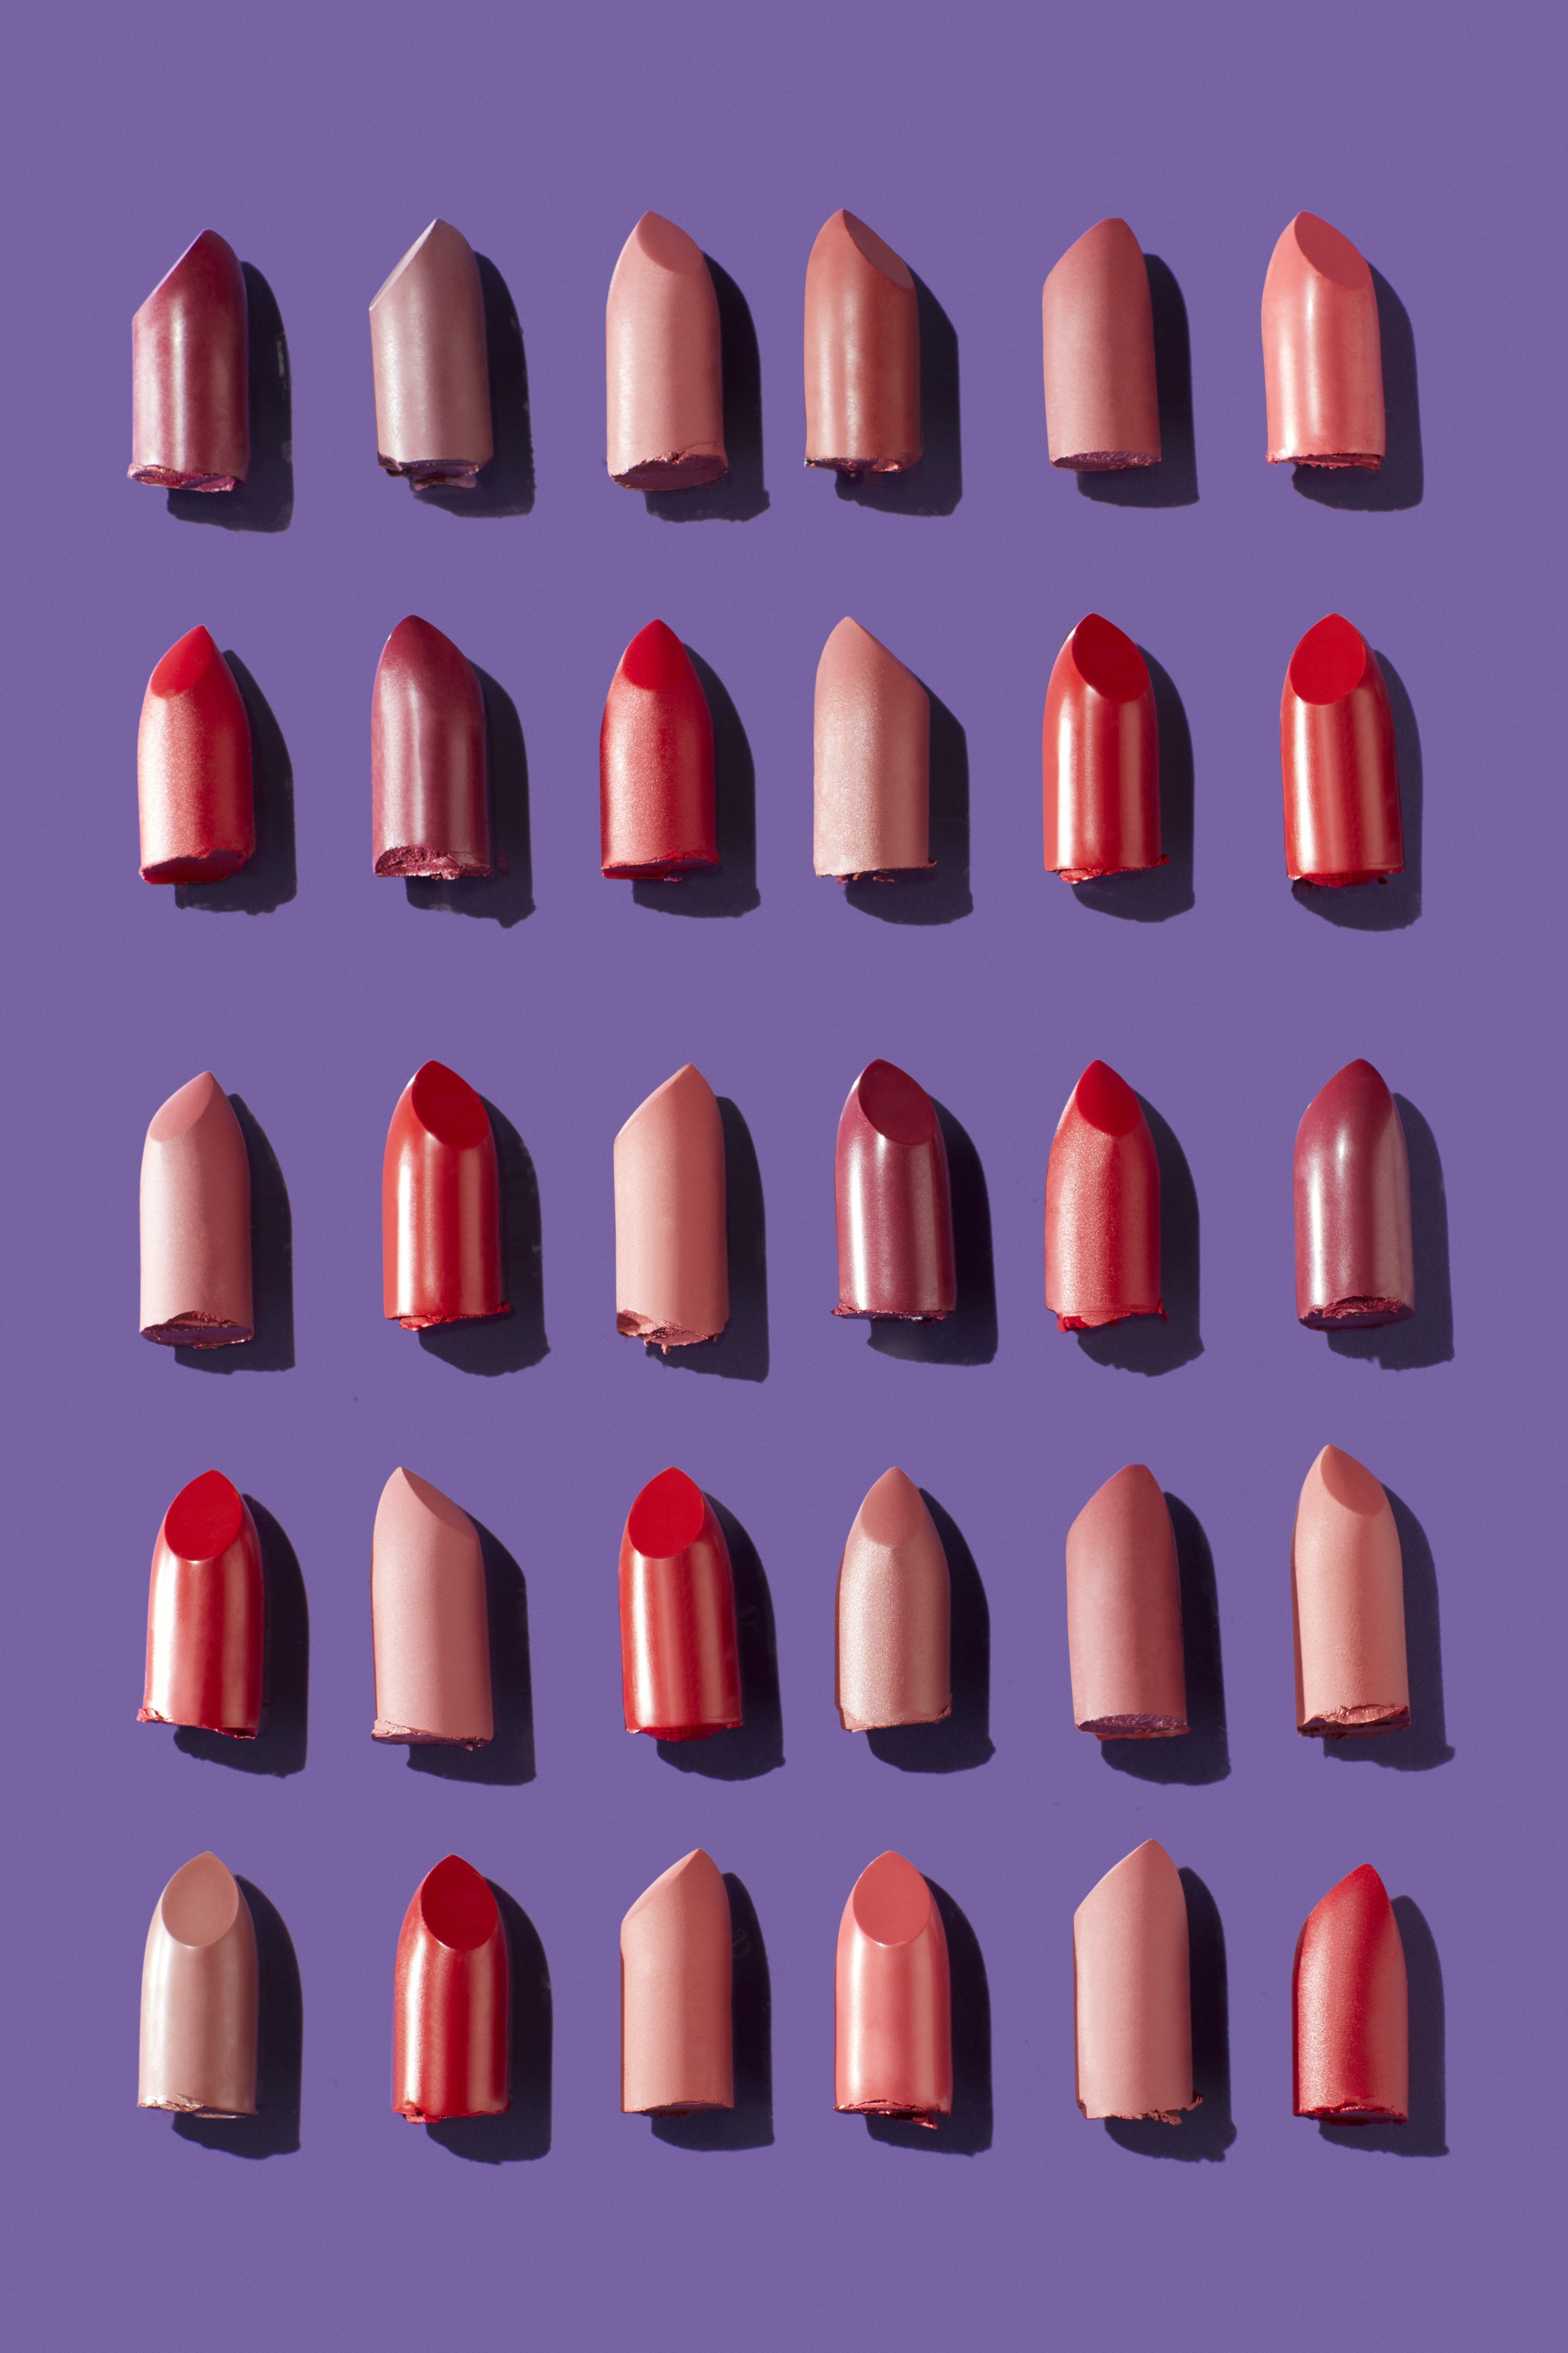 Makeup-product-ubranded-lipstick-heads-different-colors-purple-background-editorial-unlimited-Web-Rendition